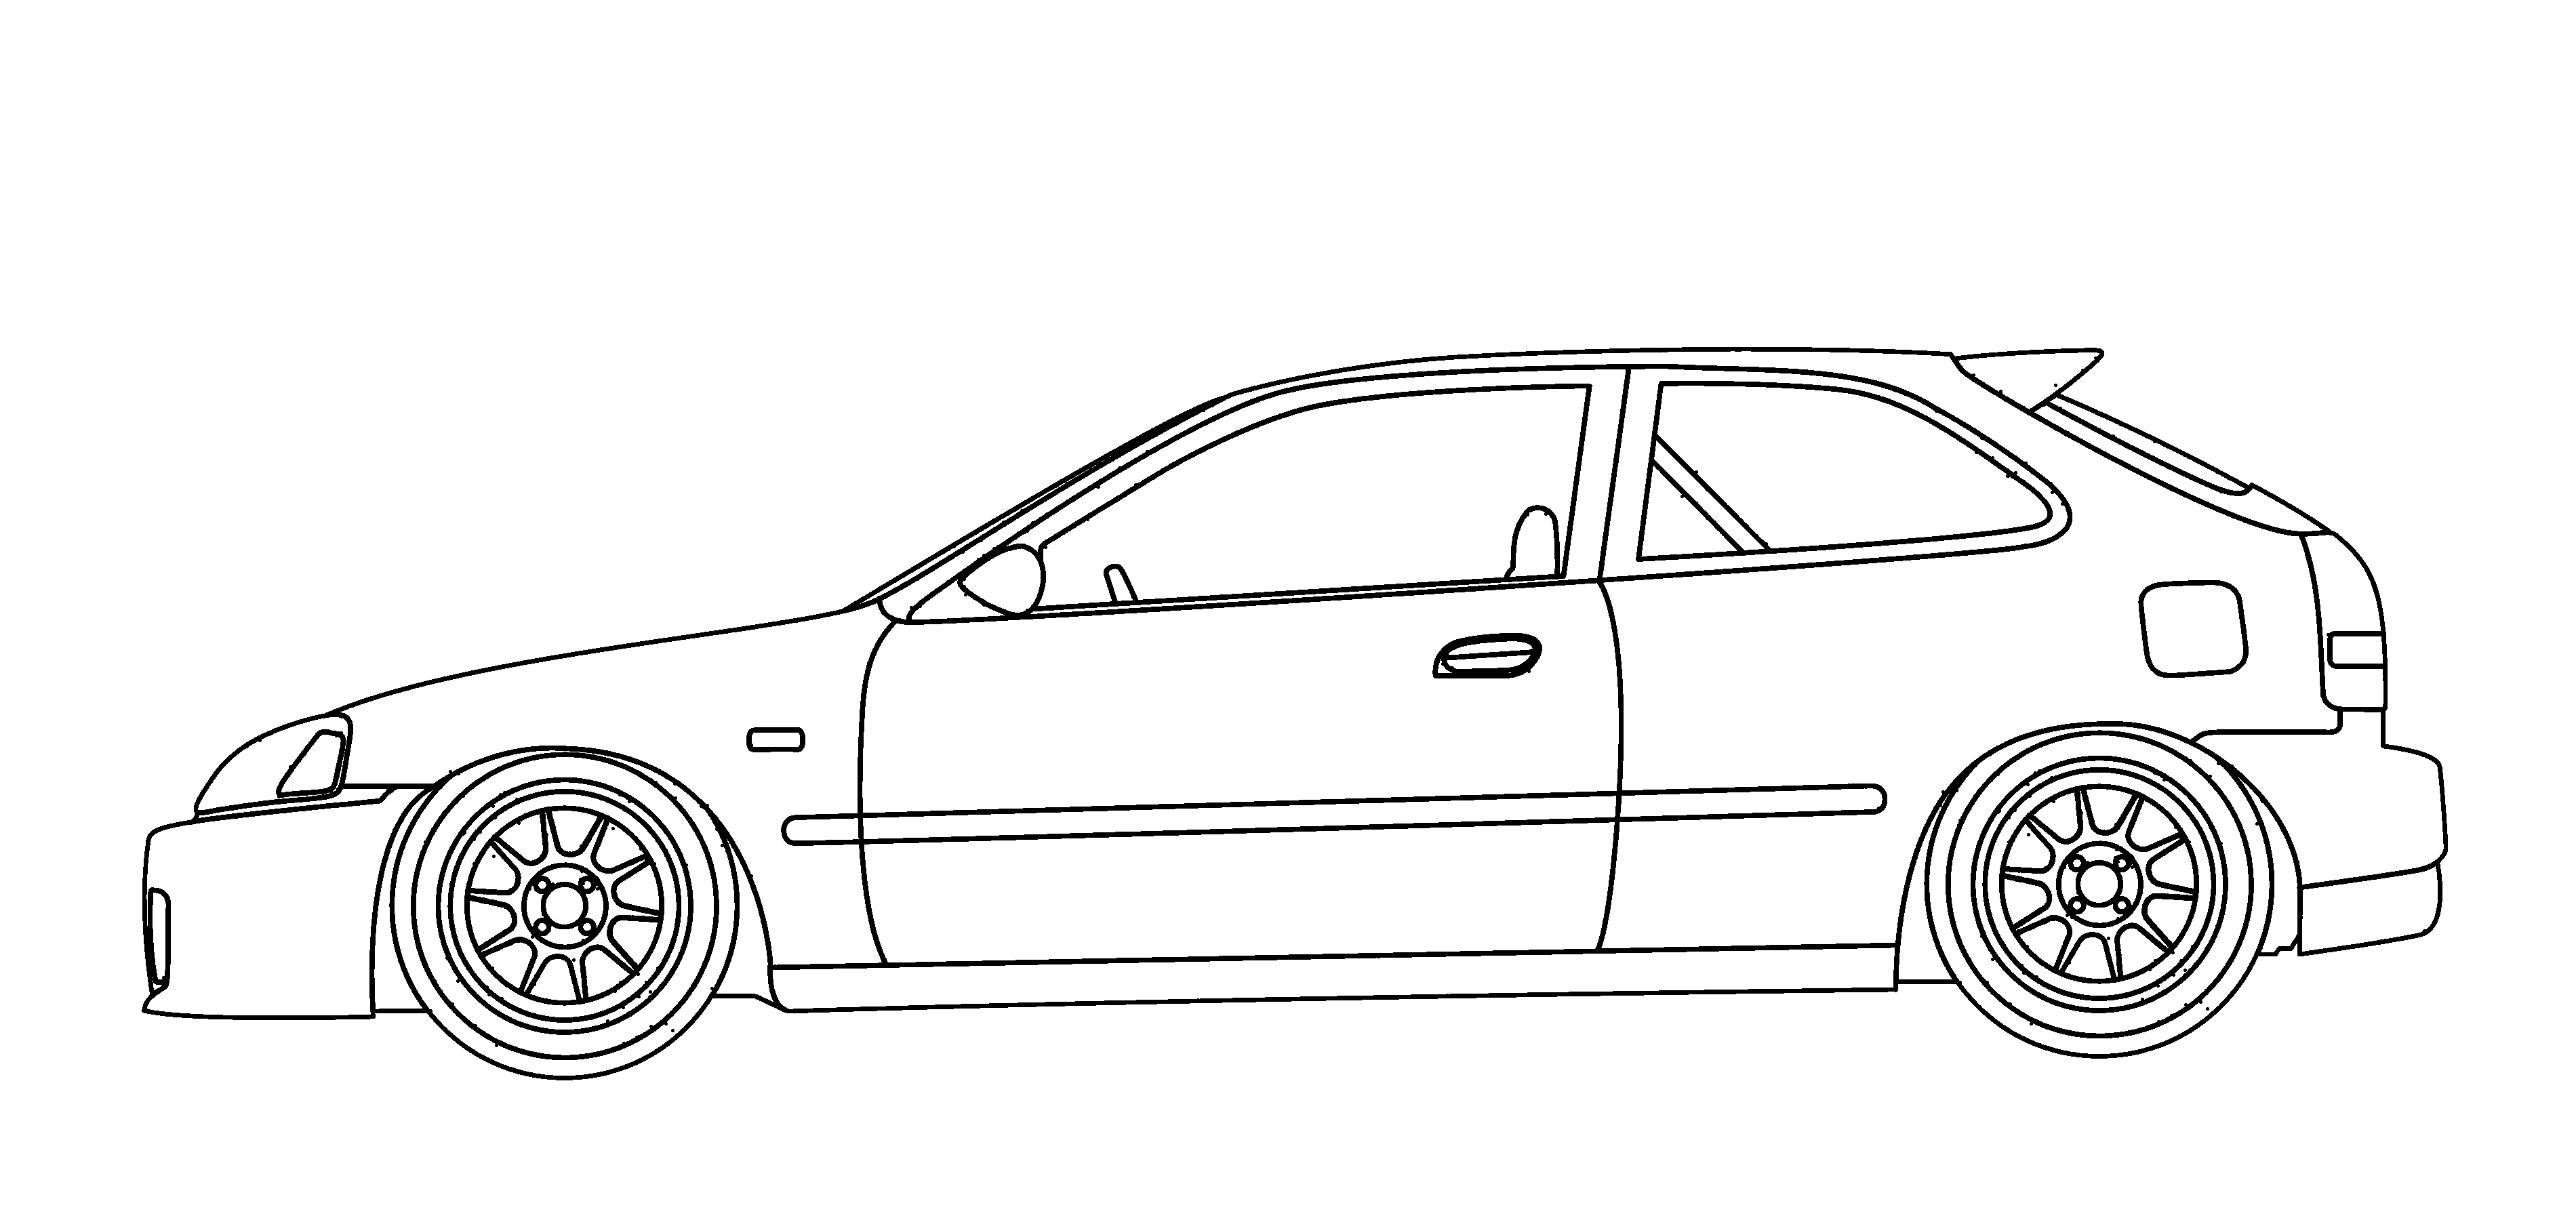 Jdm Honda Civic Drawing